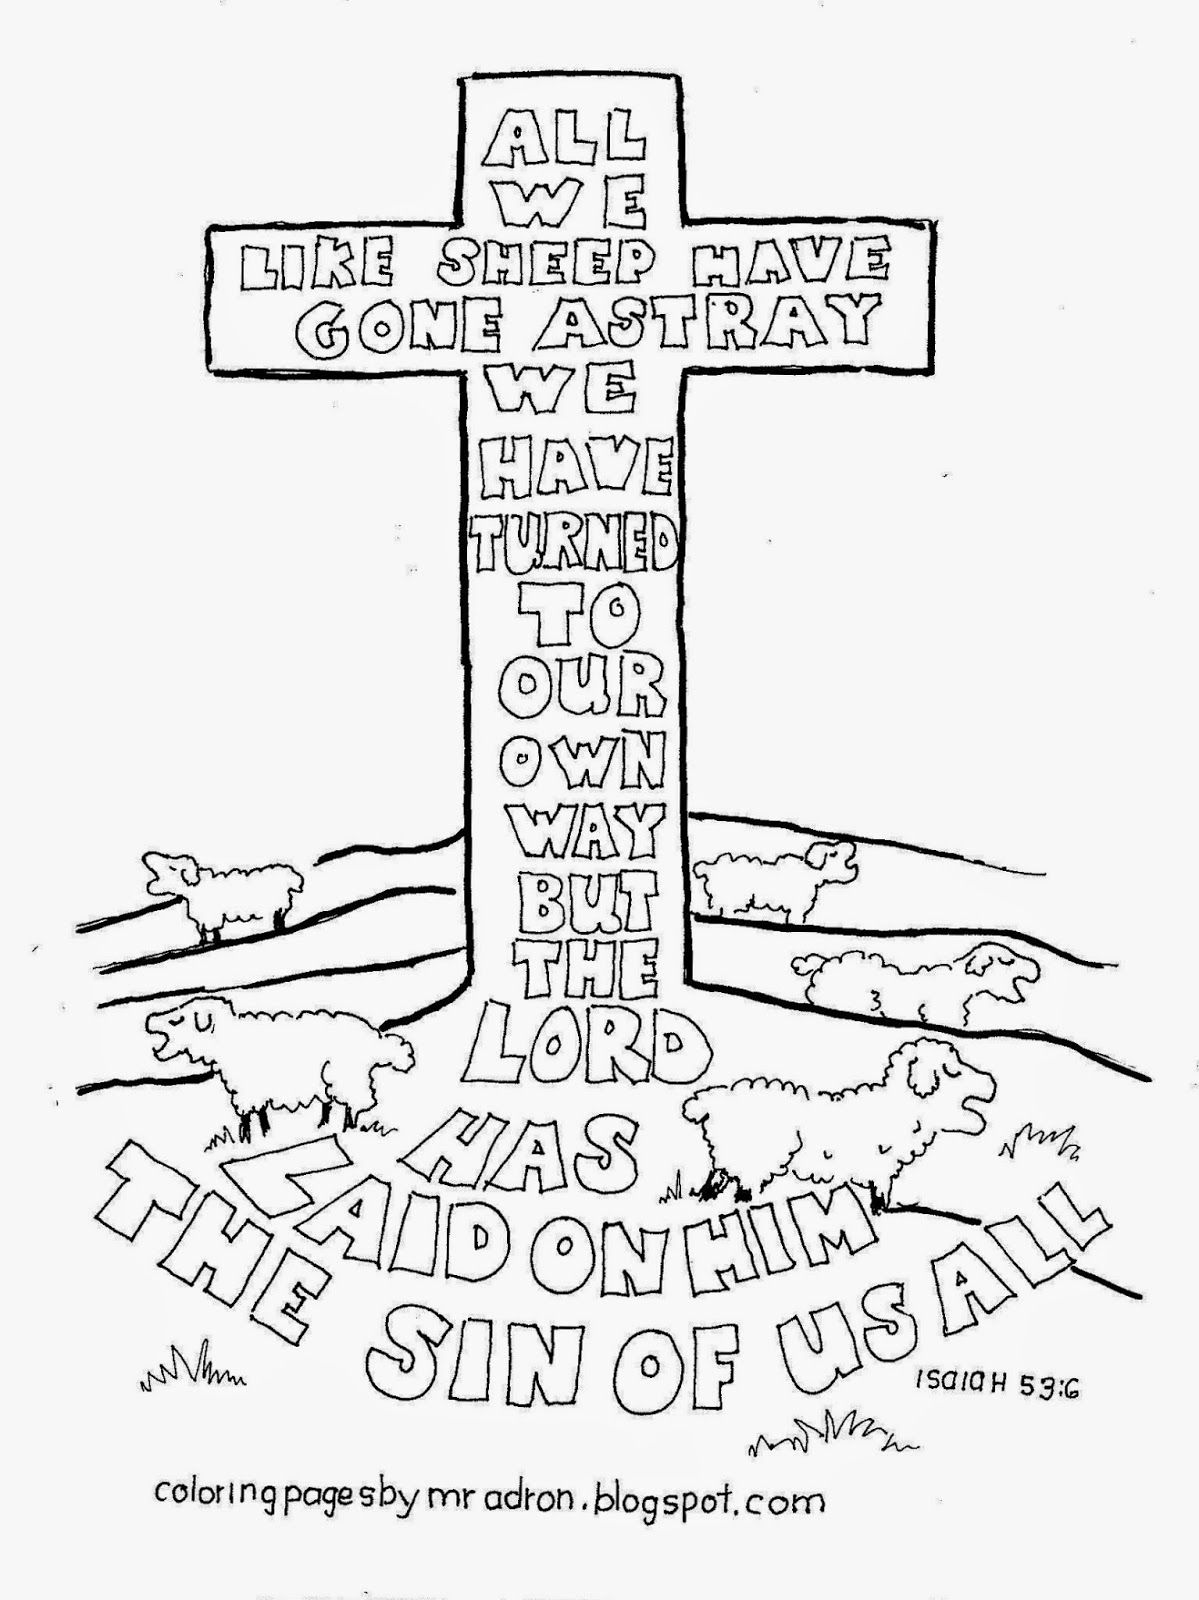 H words coloring pages - Bible Colouring Page For Kids Isaiah 53 6 Scripture Doodles Where You Have To